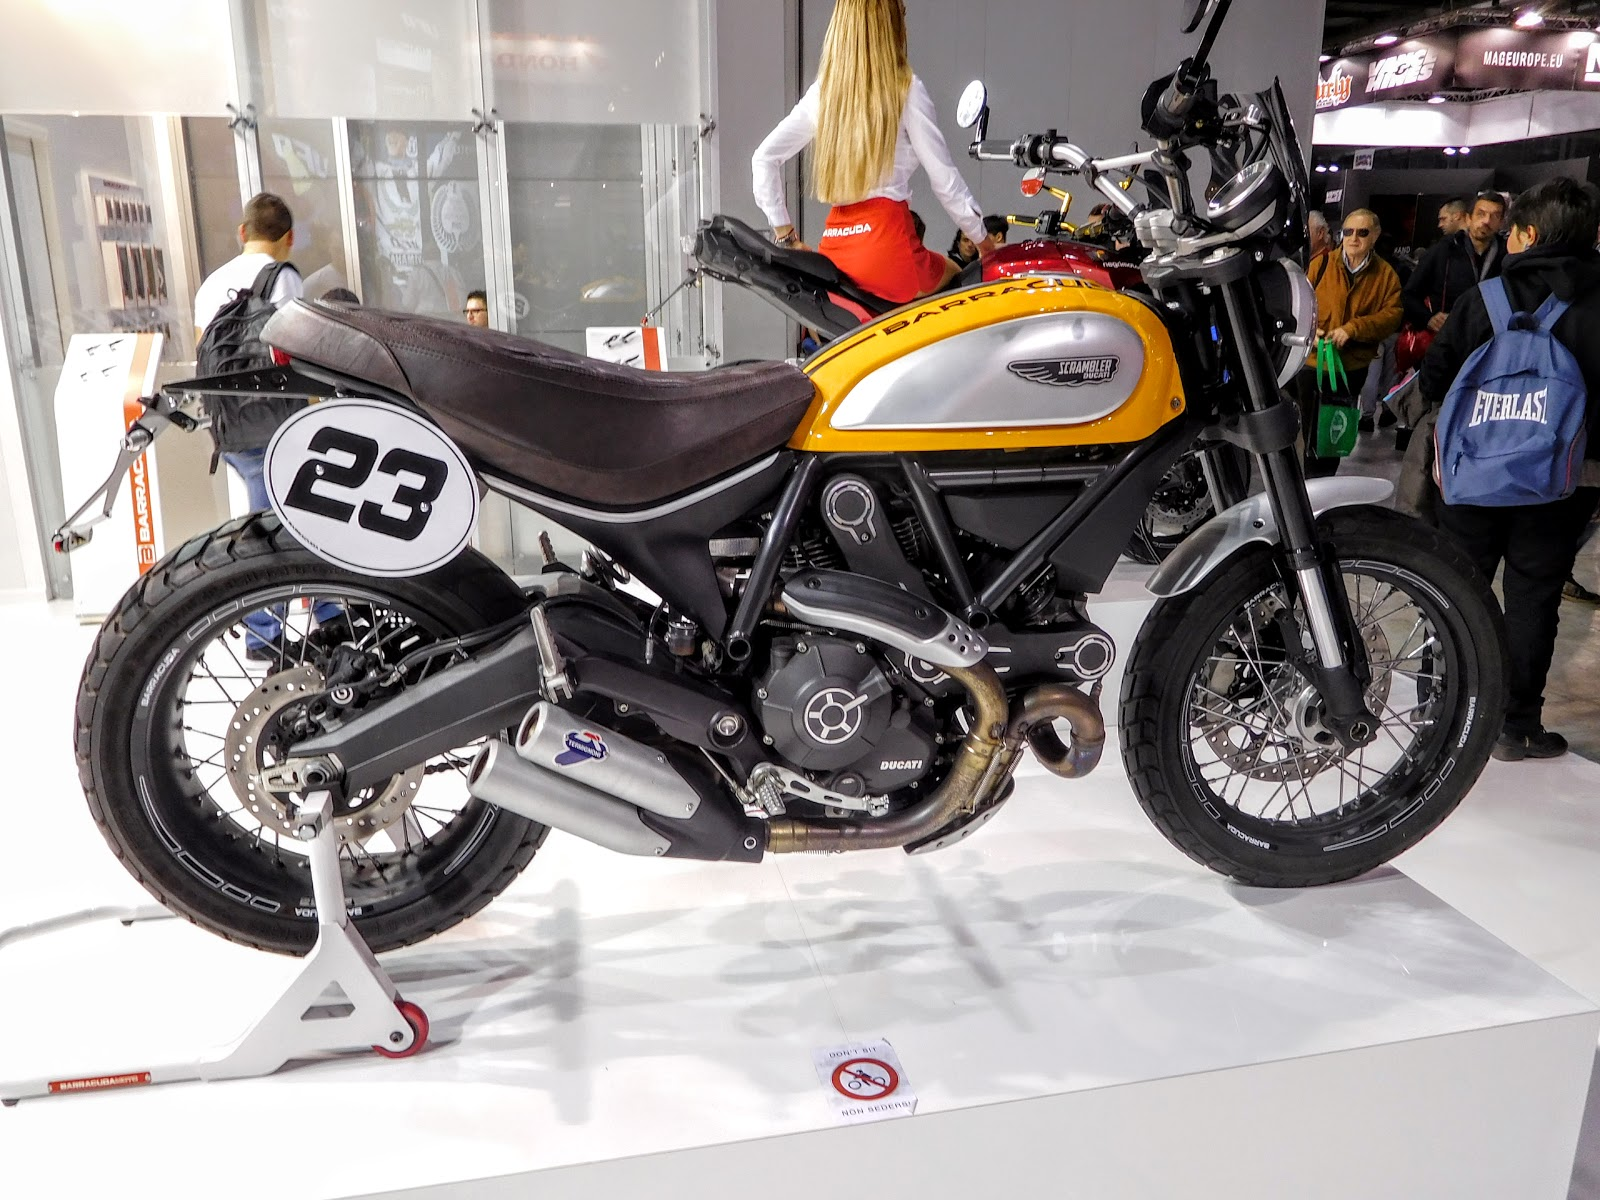 NYDucati: Barracuda modified Ducati Scrambler